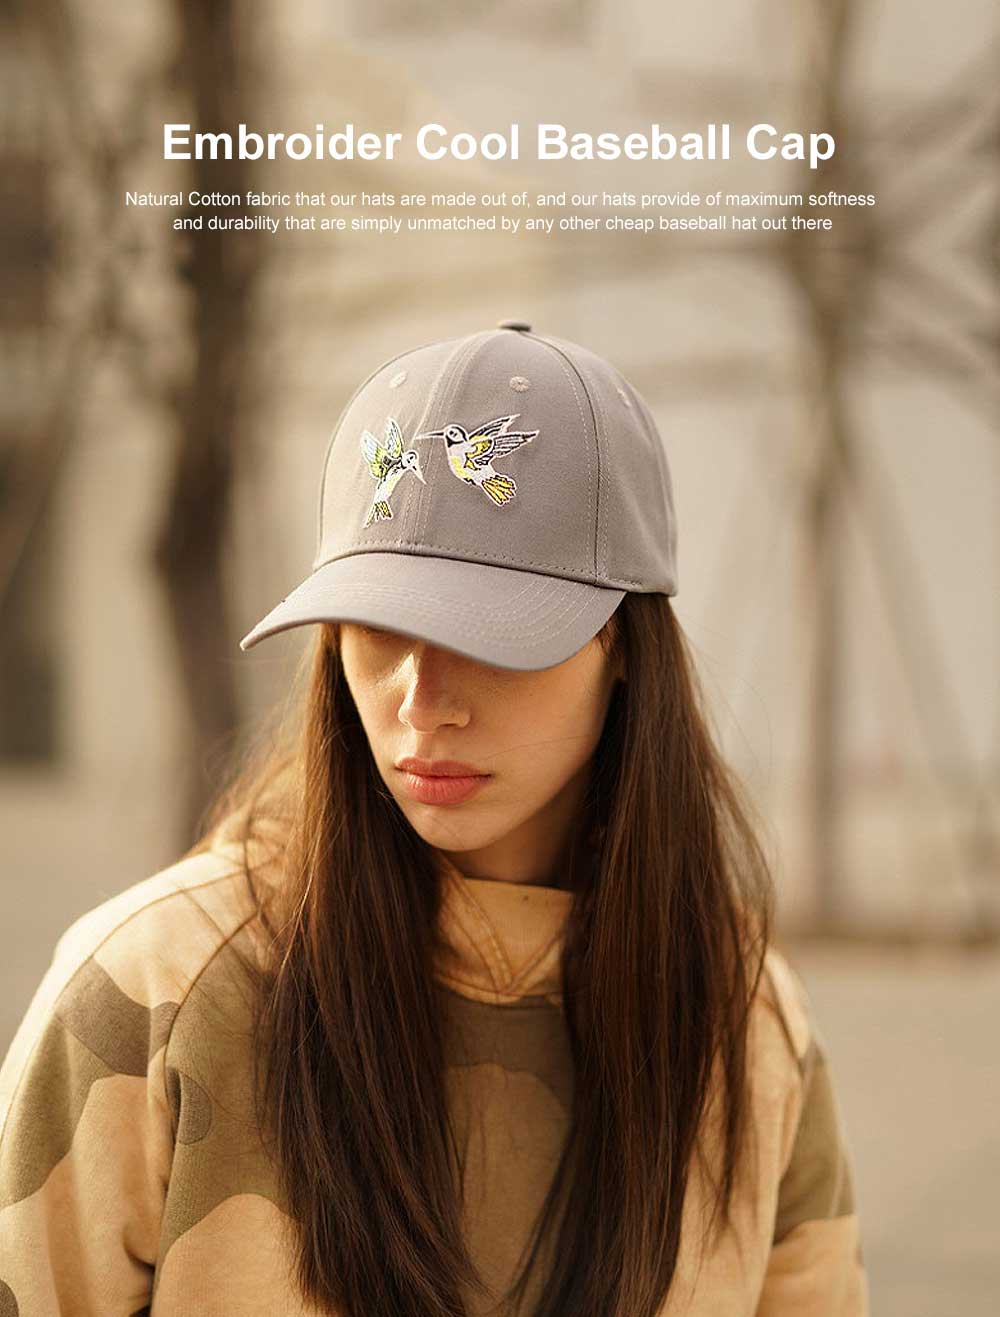 Embroider Hats Cool Baseball Cap Hip Hop Casquette with Adjustable Buckle Cotton Polo Style Plain Caps 0